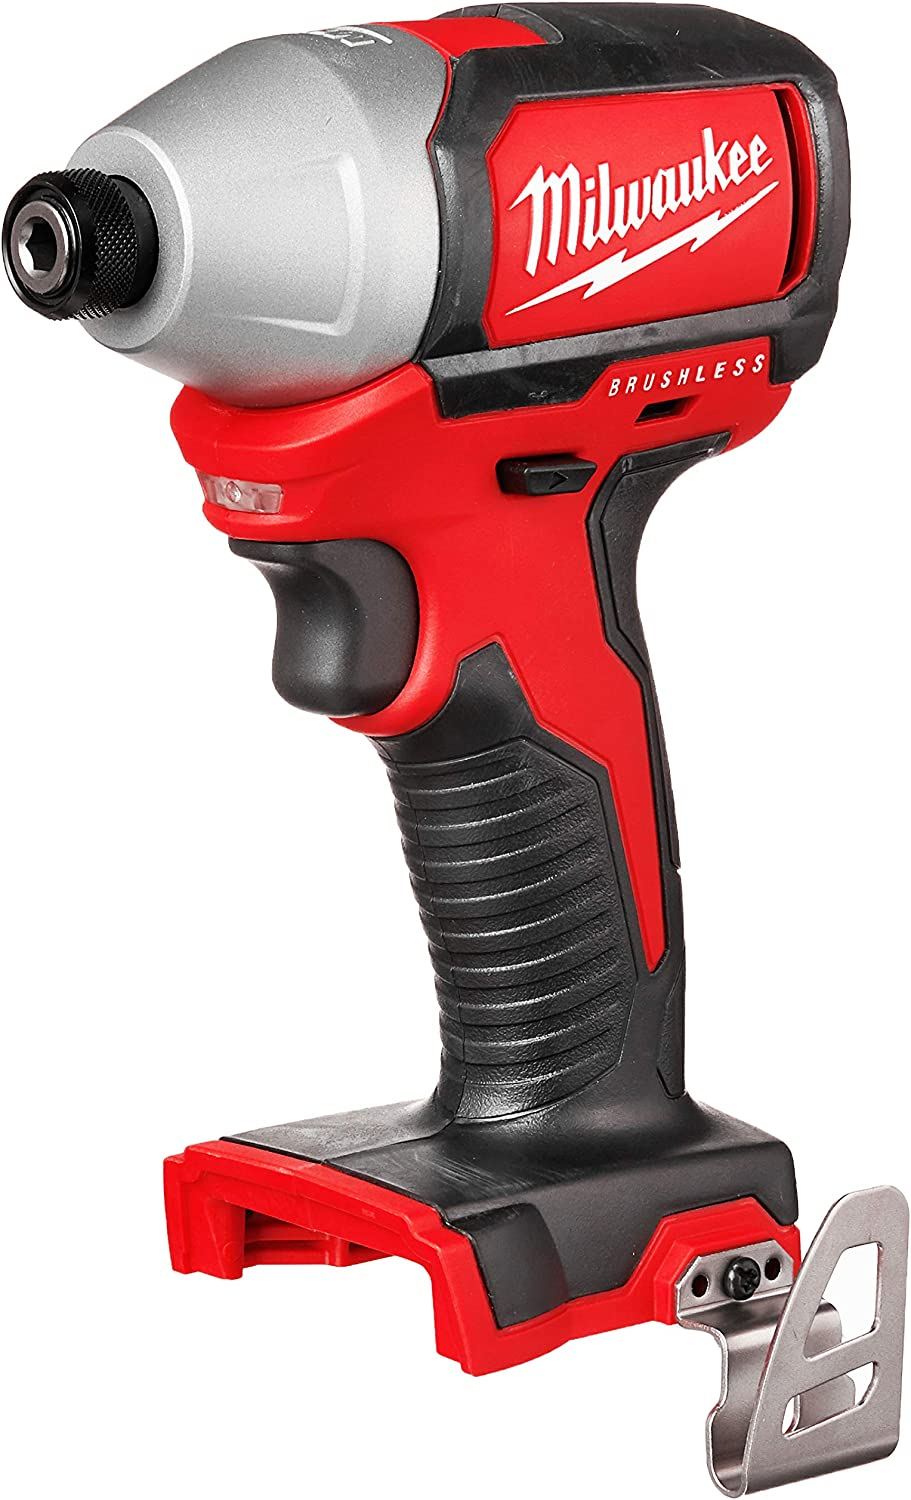 Milwaukee 2750-20 M18 Hex Compact Brushless Bare